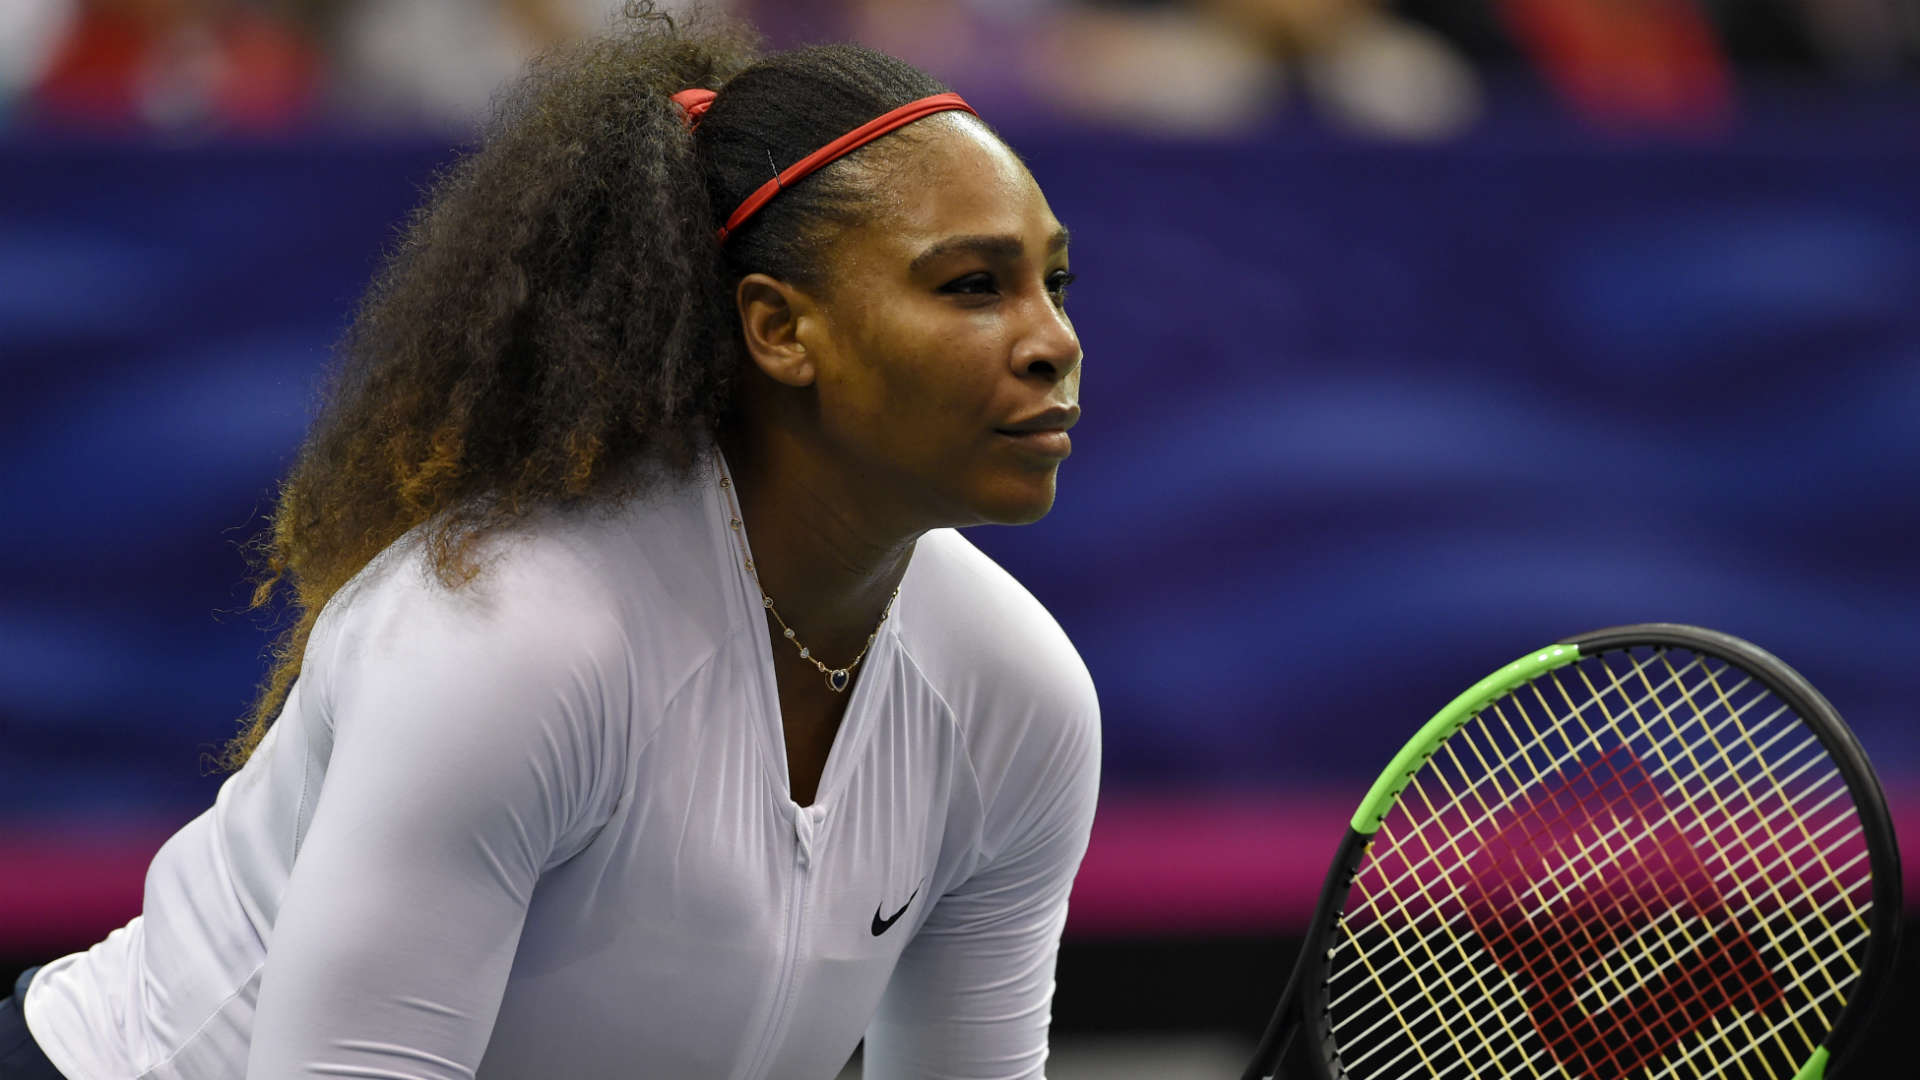 I still doubt I can reclaim place at top, says Serena